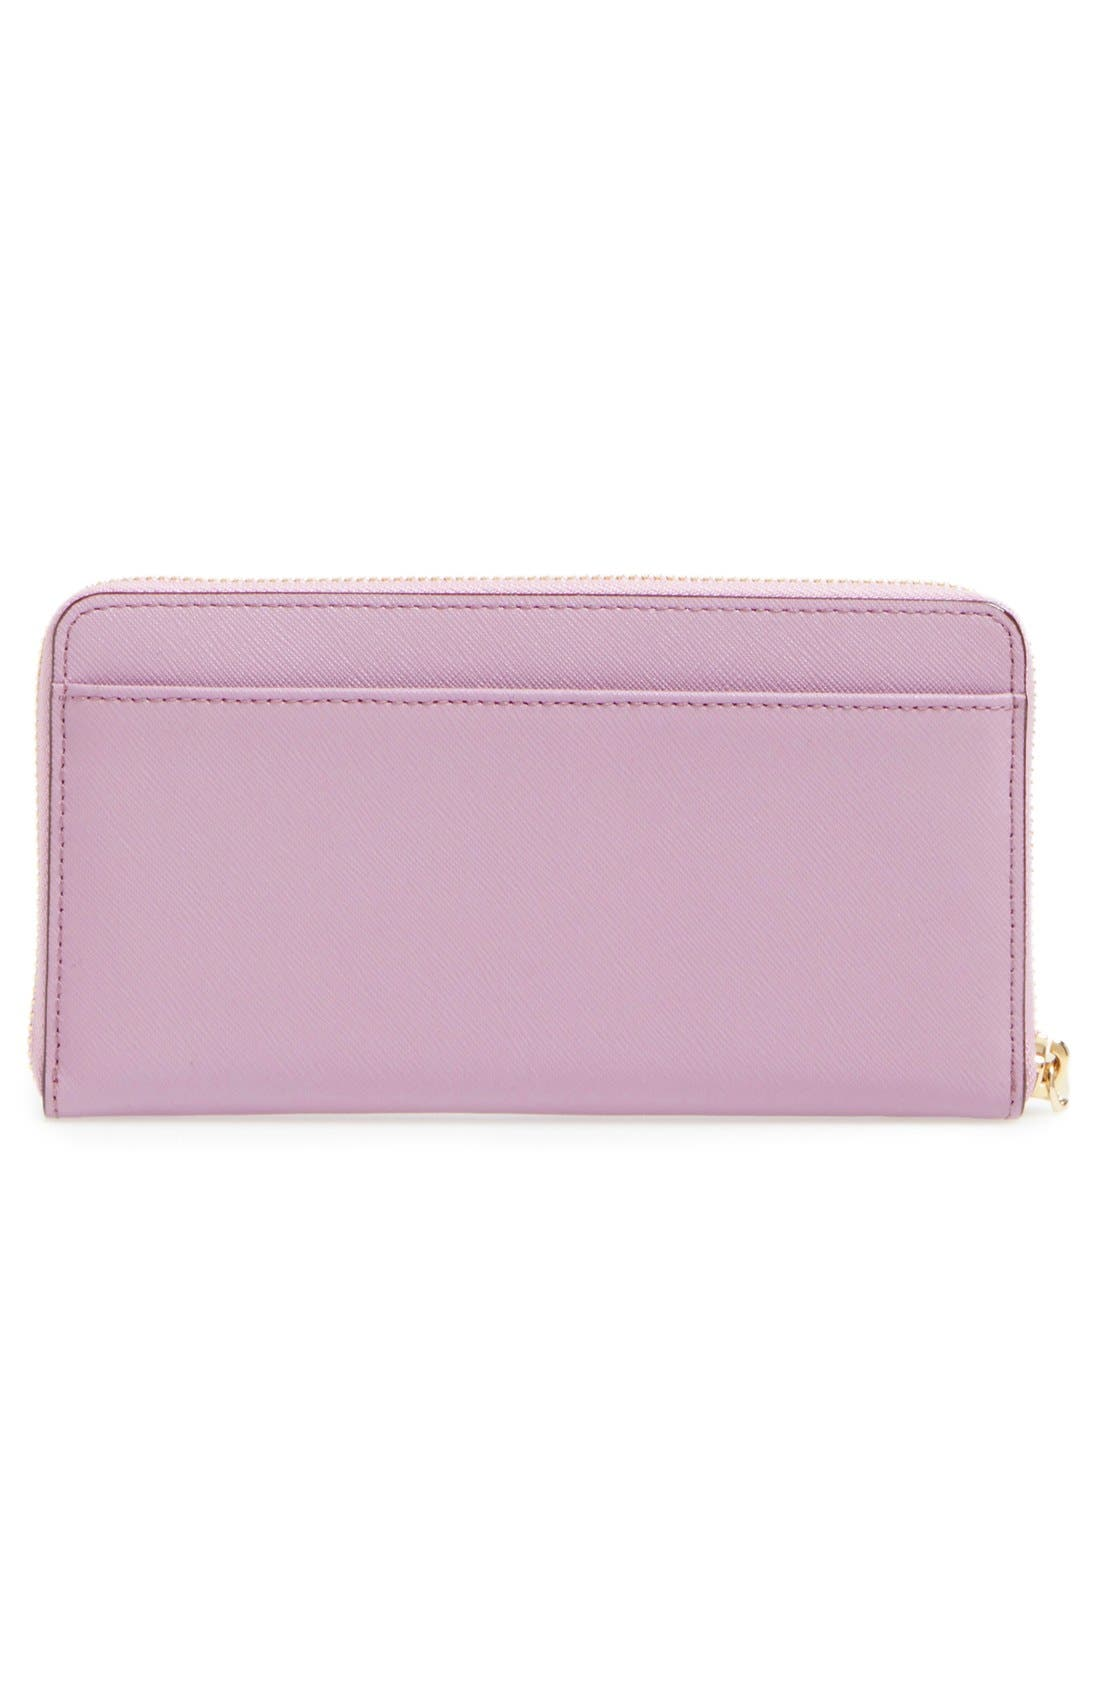 'cameron street - lacey' leather wallet,                             Alternate thumbnail 76, color,